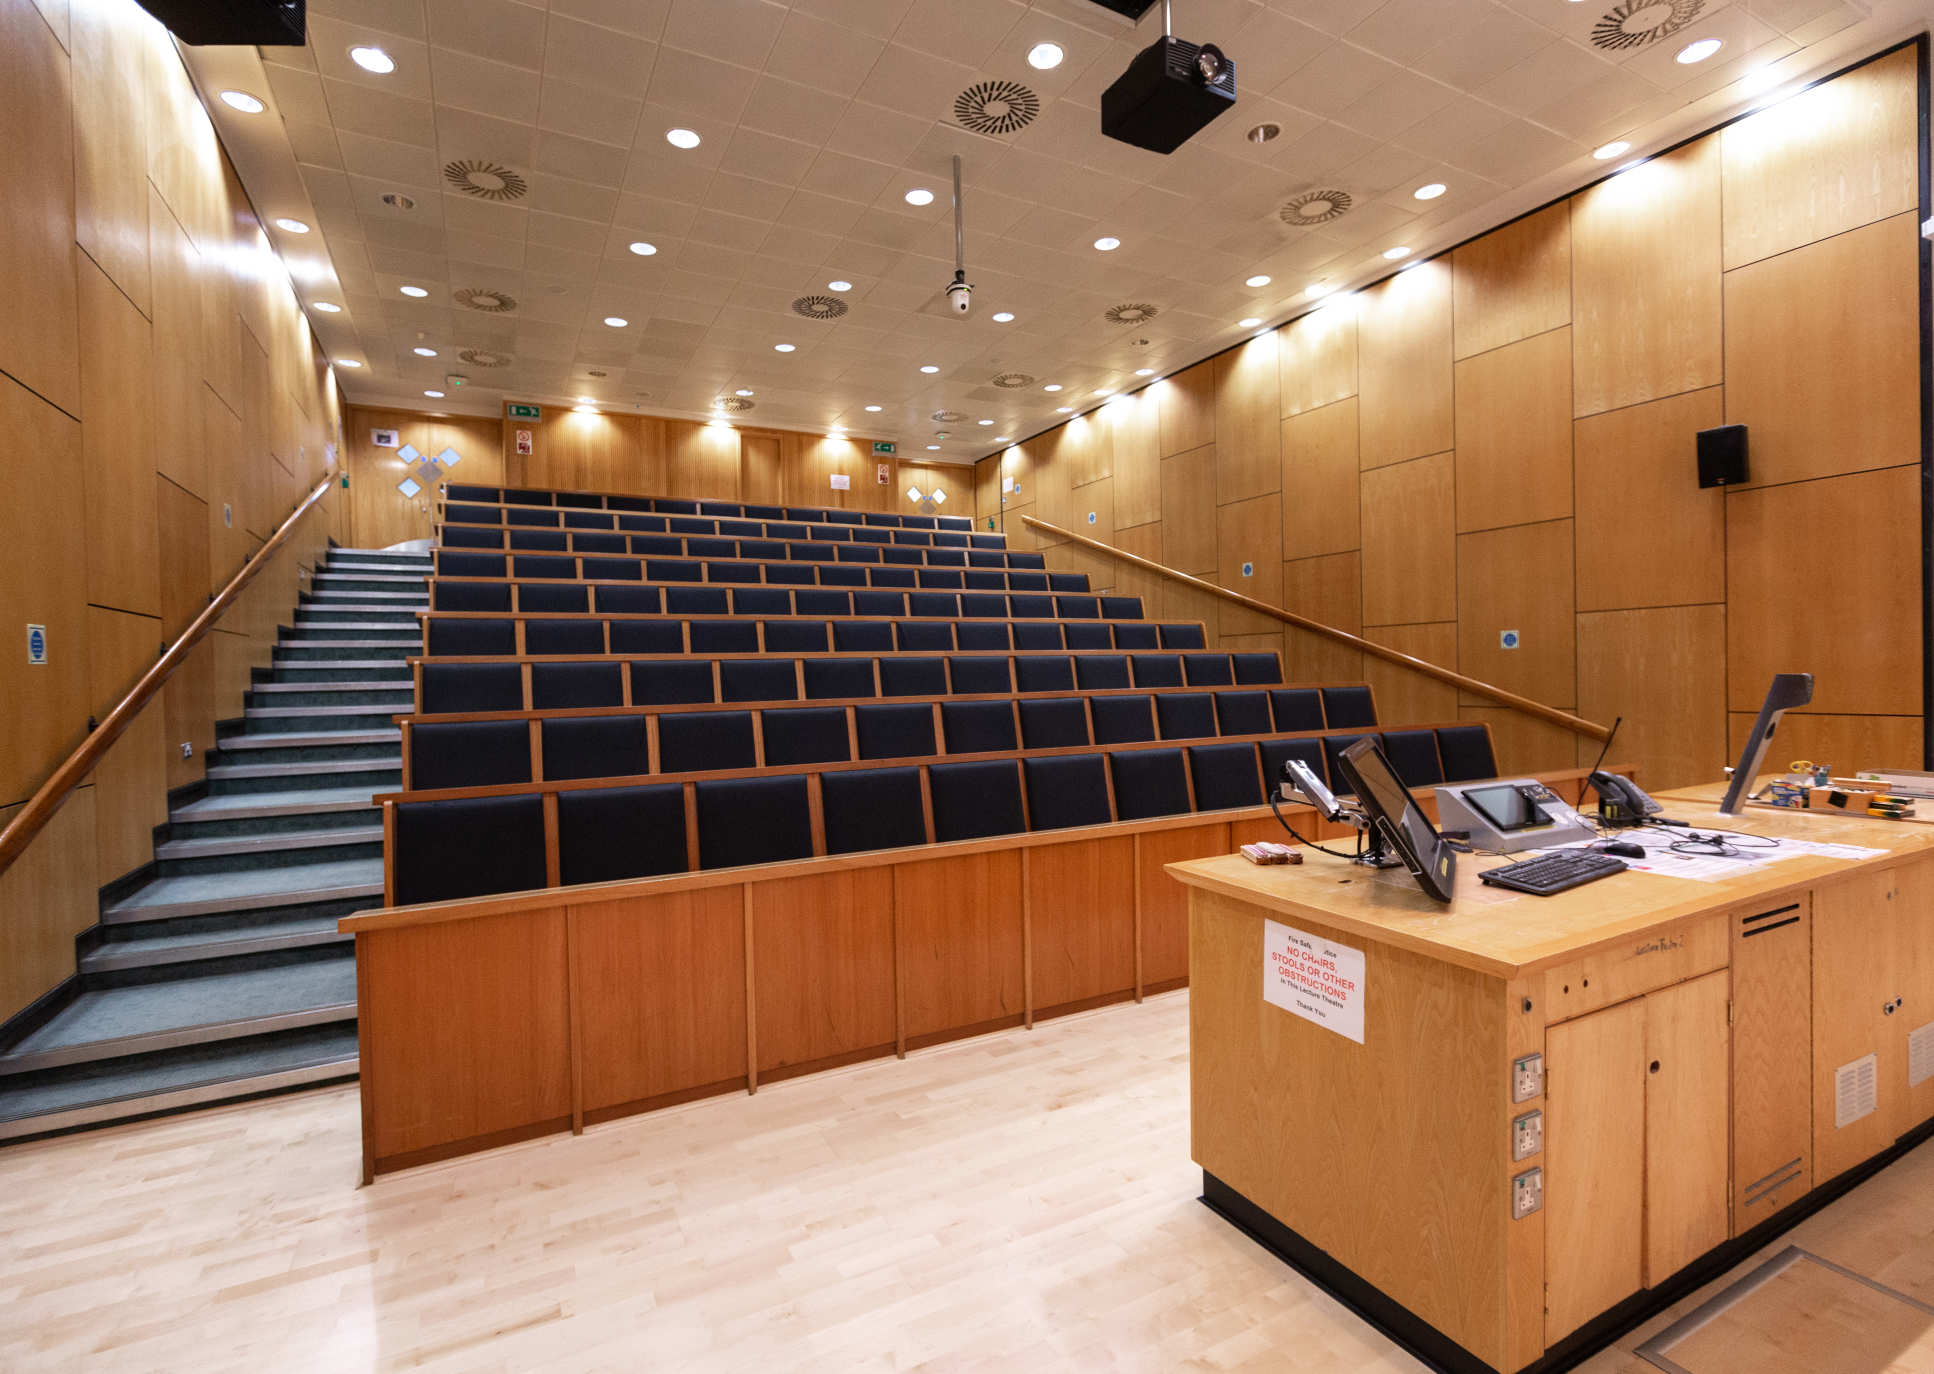 Blackett Lecture Theatre 113 prior to renovation